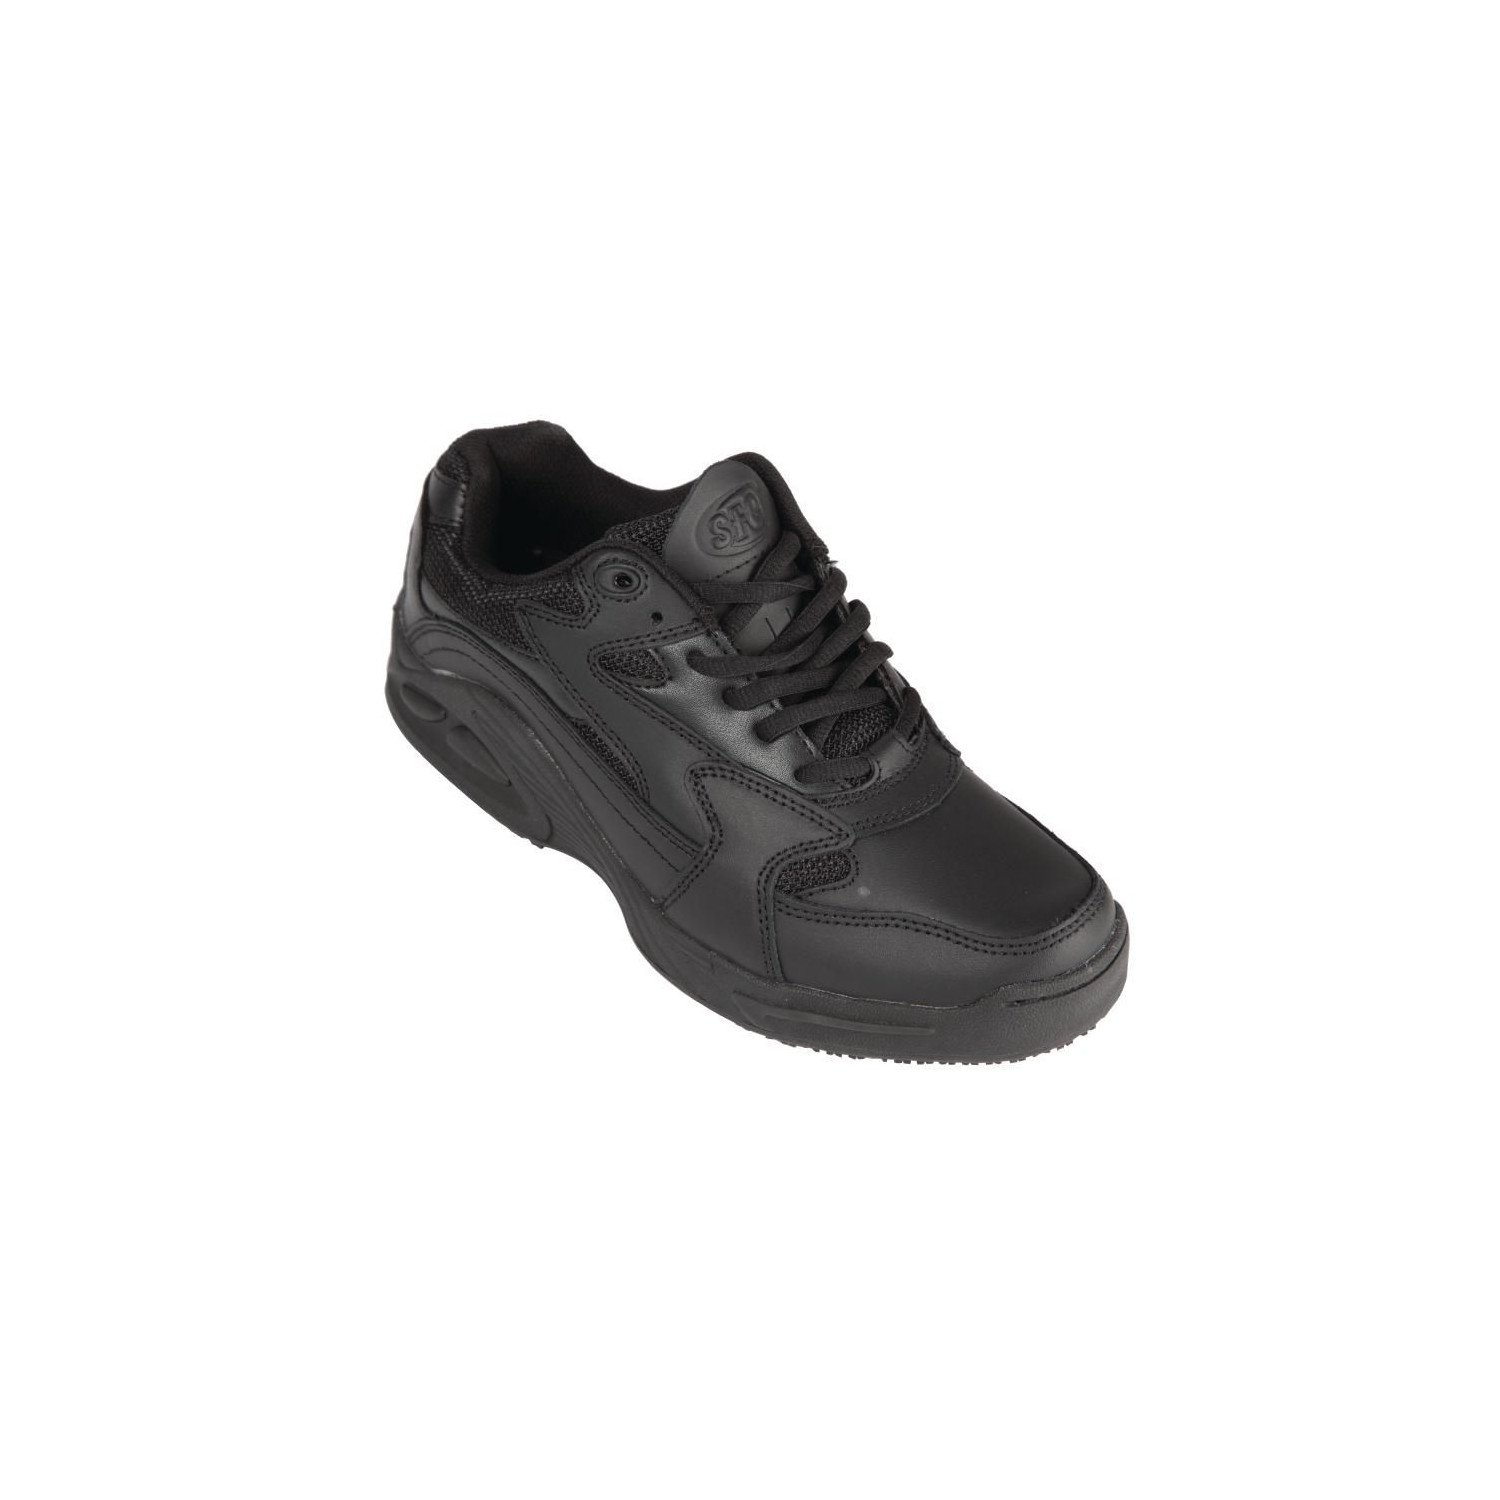 Shoes For Crews Mens Stay Grounded Leather Trainer - Size 46 SHOES FOR CREWS Nisbets Vêtements